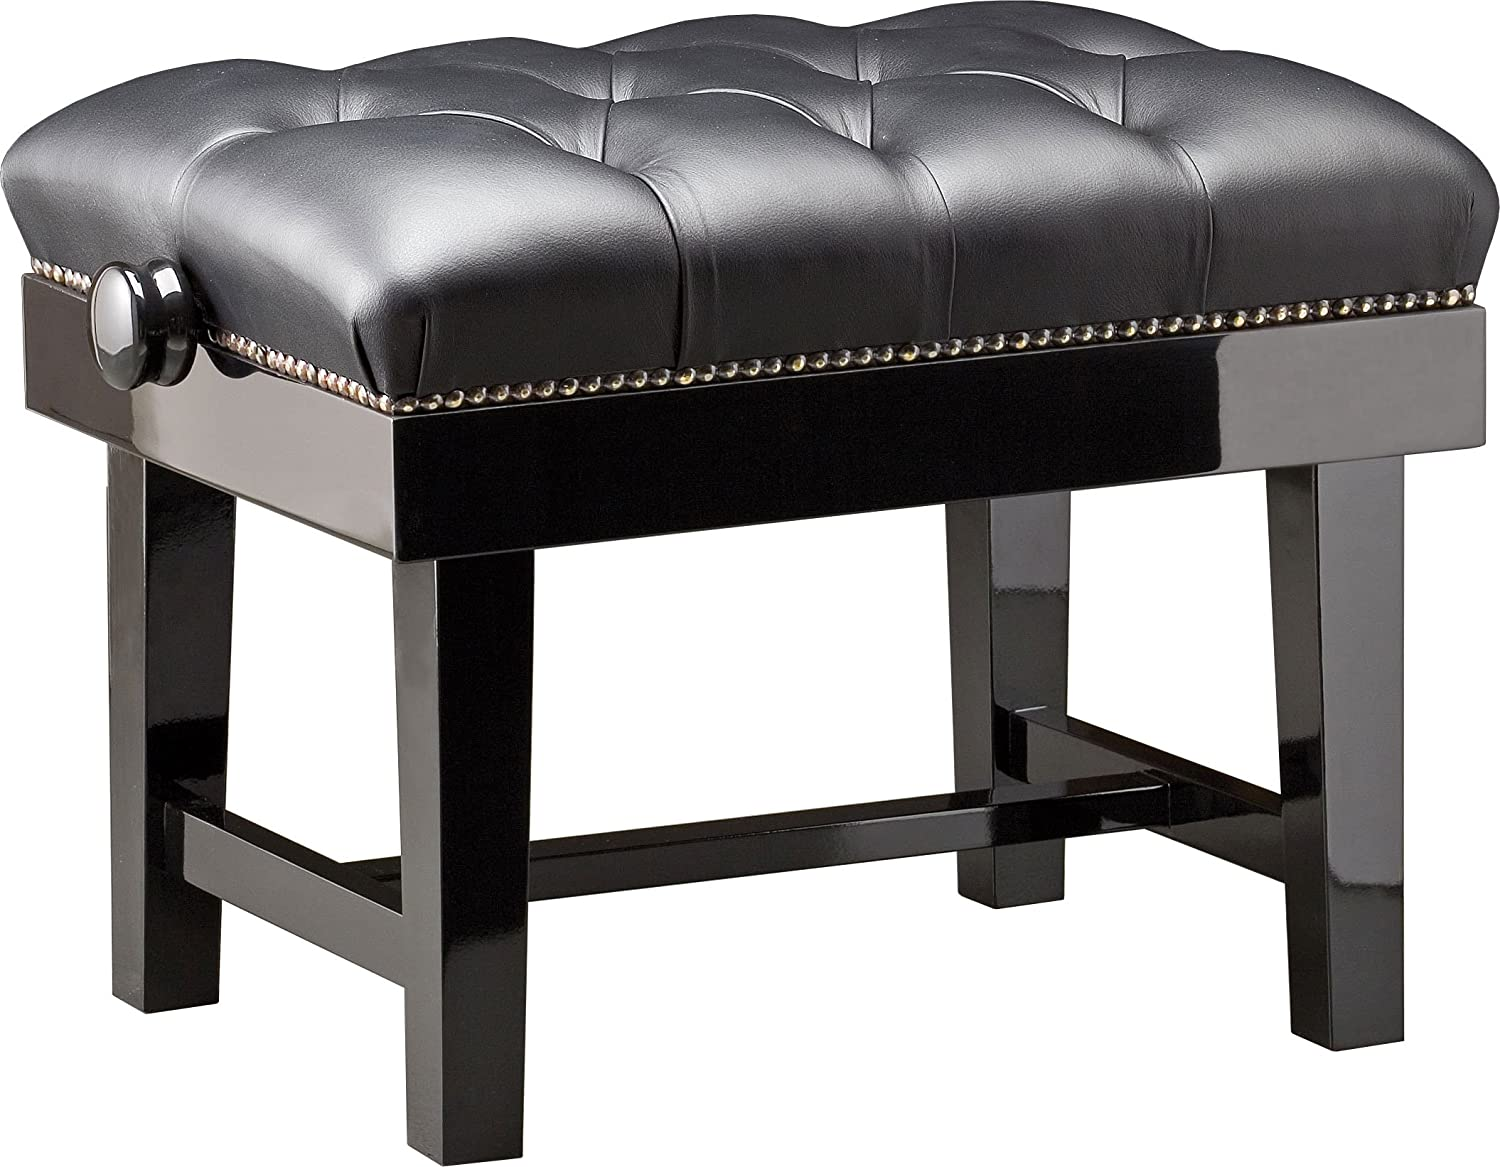 CGM 125QUEEN Premium Quality Height Adjustable Concert Piano Stool in Black Gloss u0026 Black Buttoned Leather Upholstery Amazon.co.uk Musical Instruments  sc 1 st  Amazon UK : piano stool mechanism - islam-shia.org